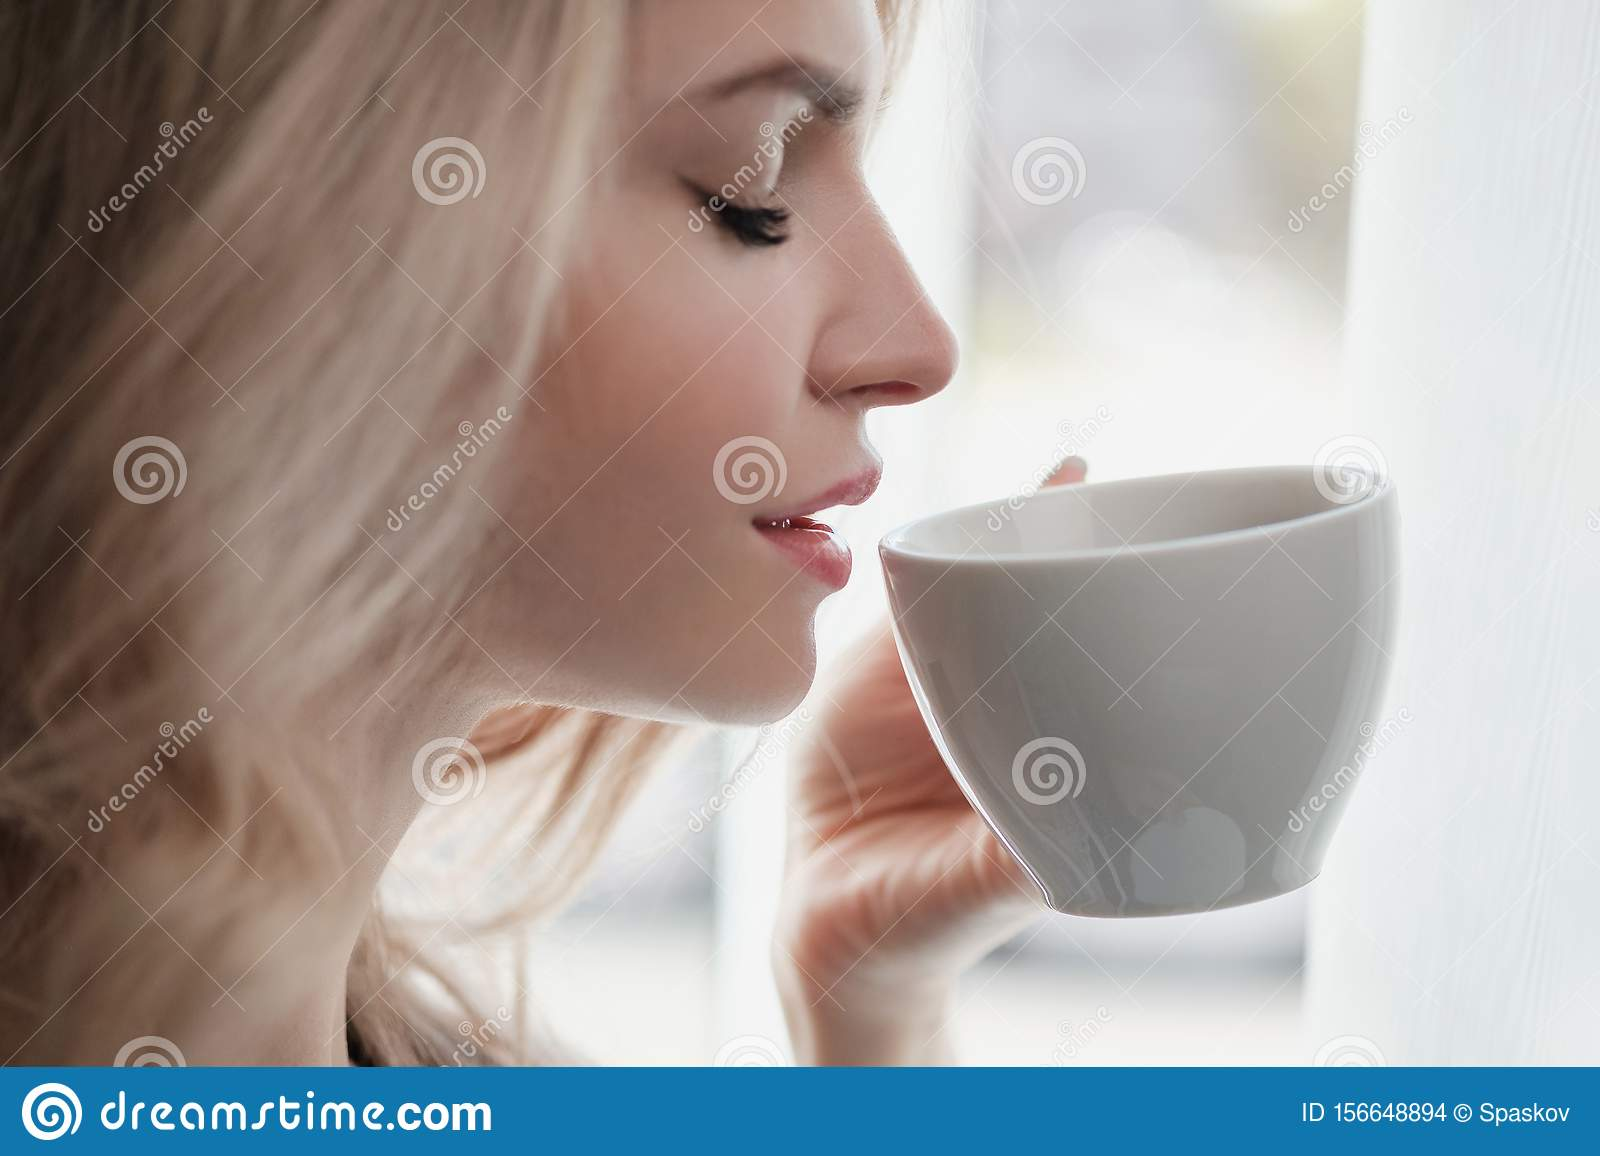 Beautiful young blonde woman in a blue robe by the window. Drinks coffee or tea from a white cup with a saucer. Morning